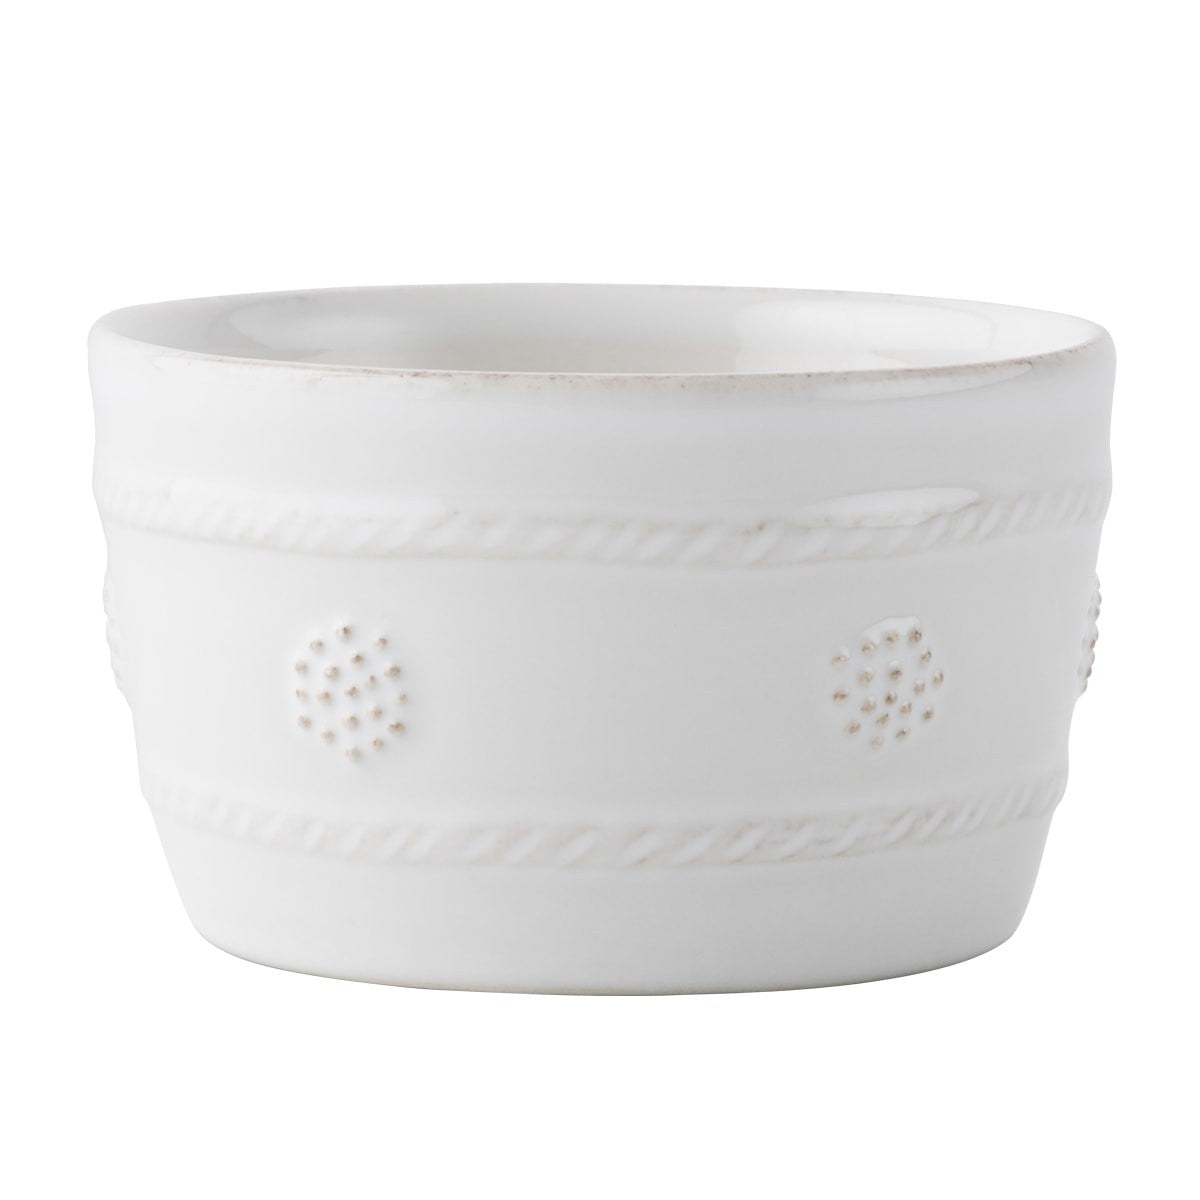 Berry & Thread Ramekin